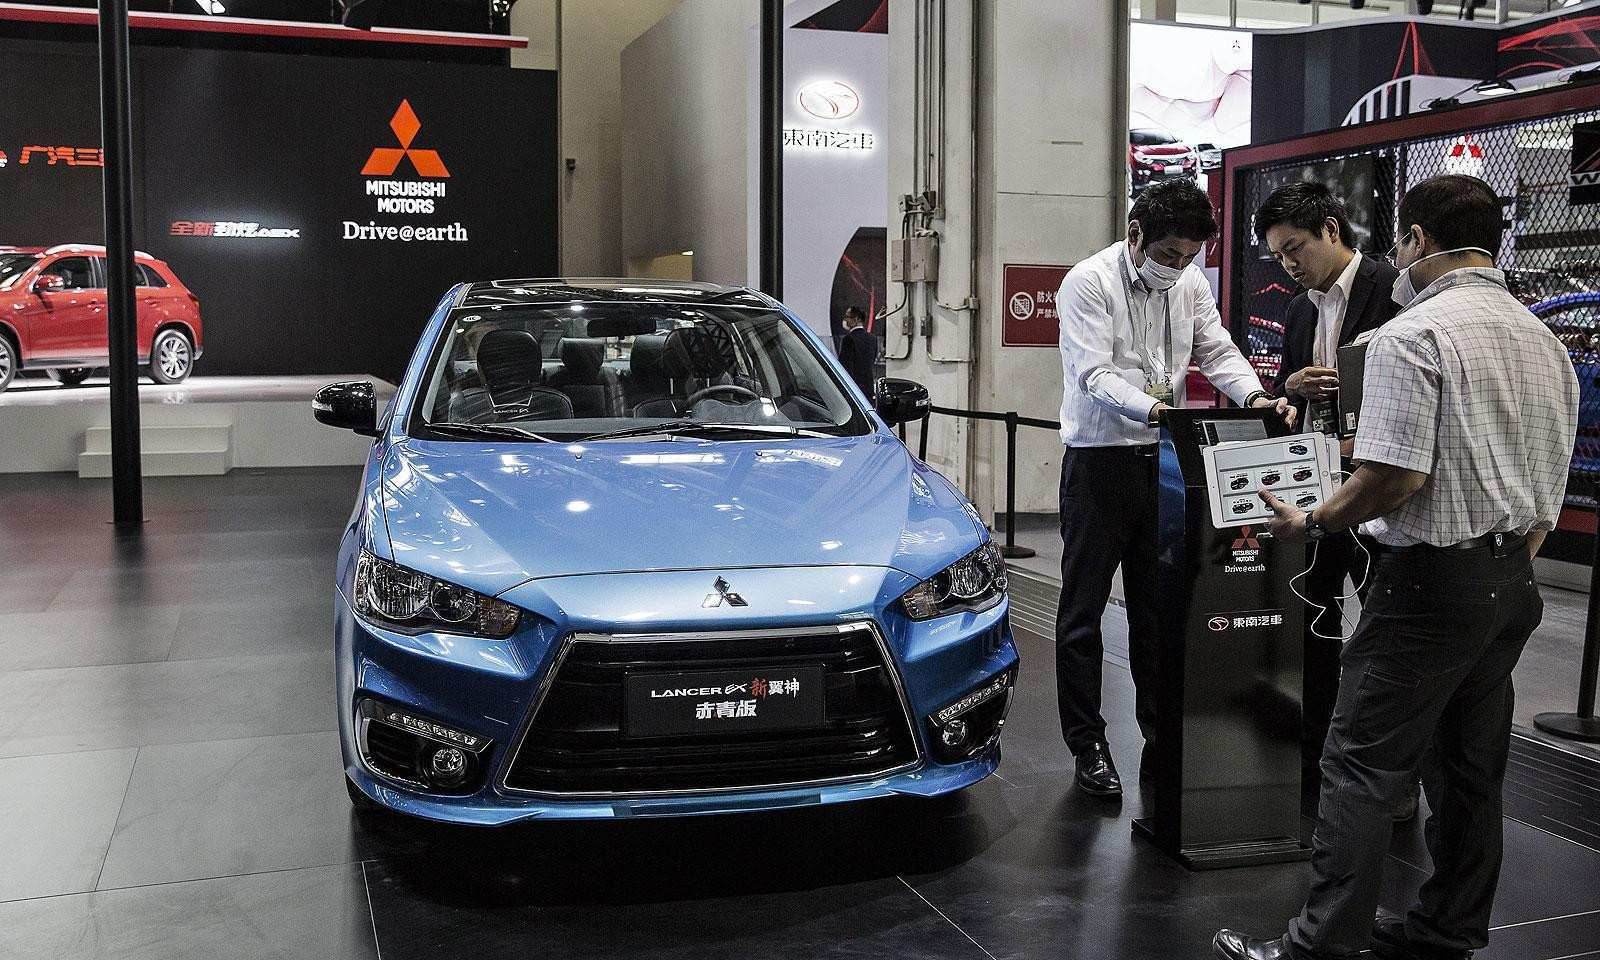 78 New 2020 Mitsubishi Lancer 2018 Exterior and Interior for 2020 Mitsubishi Lancer 2018